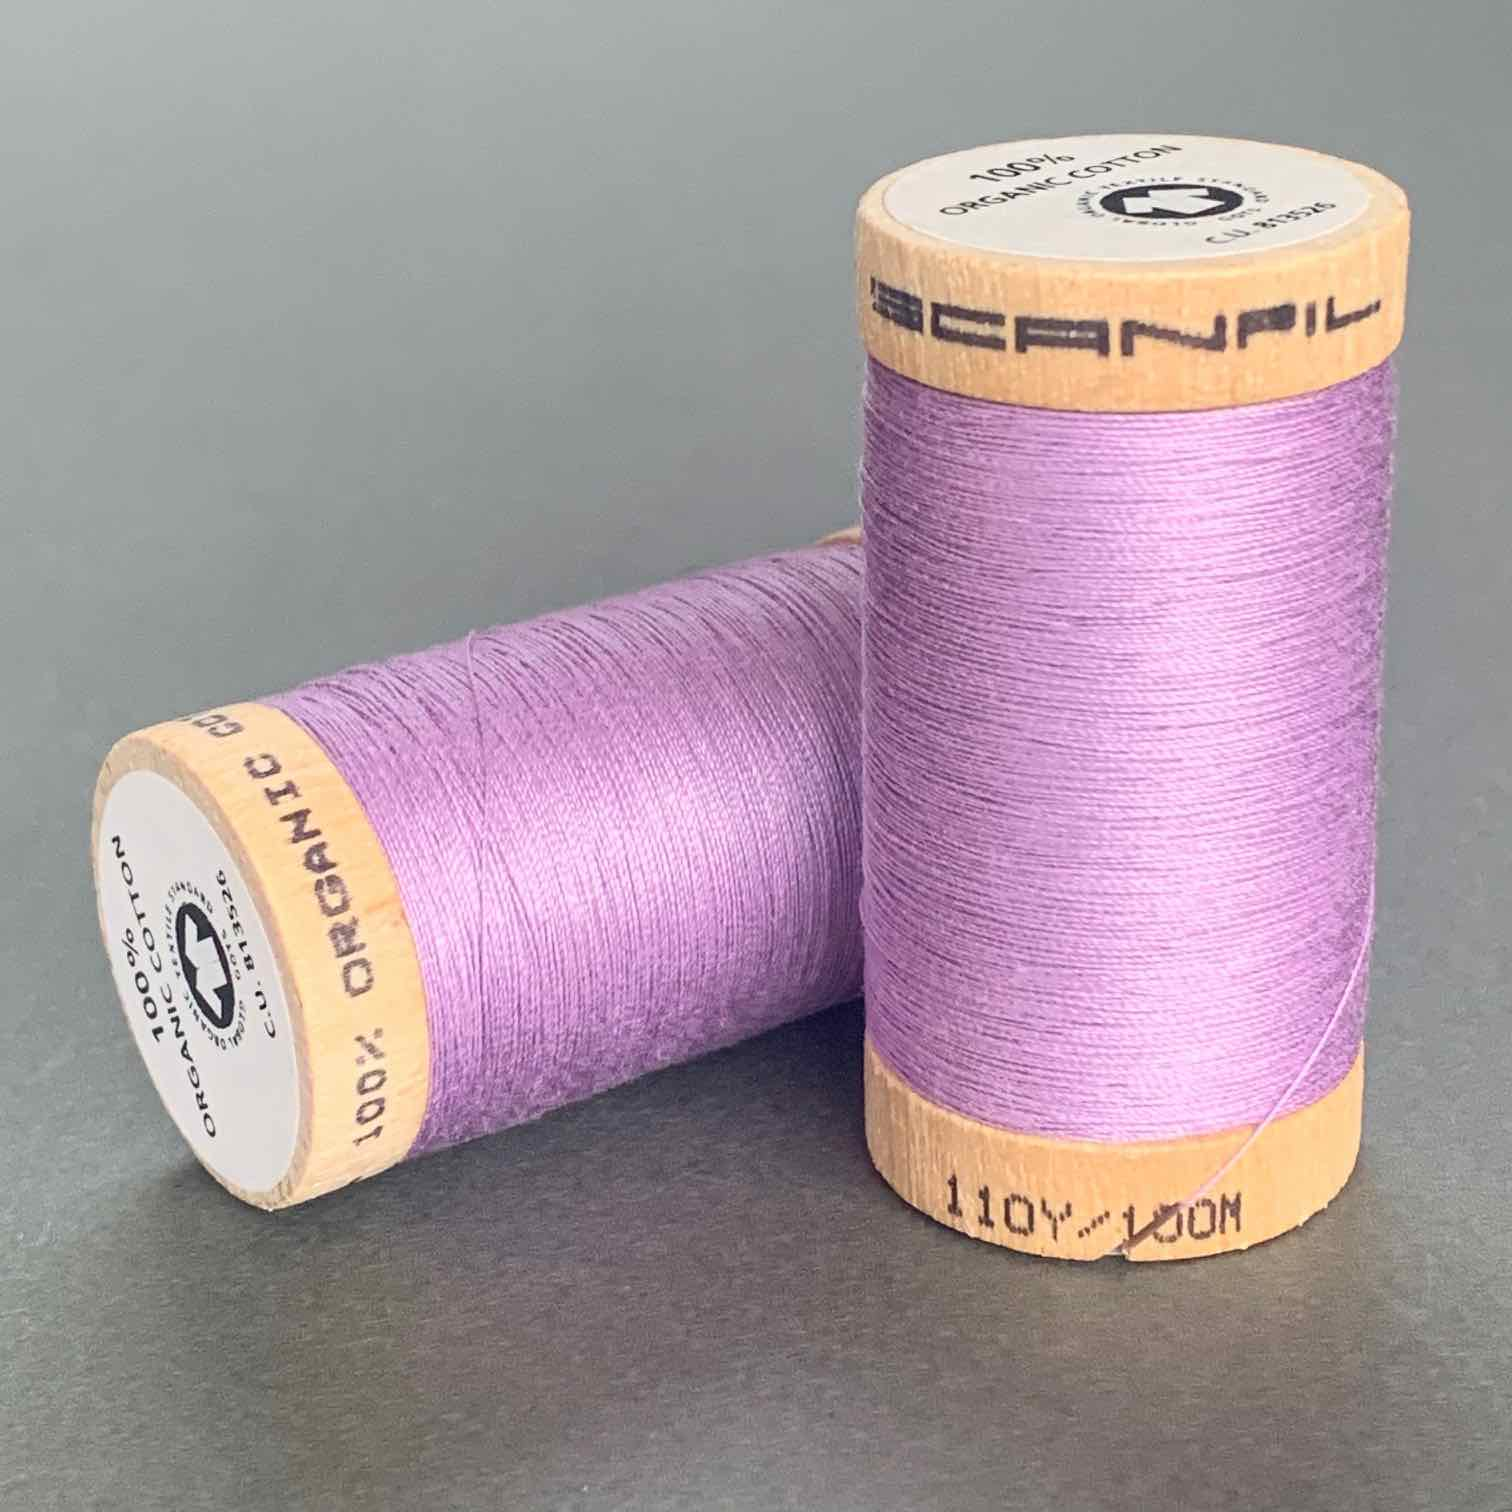 Scanfil Organic Cotton Sewing Thread Lilac